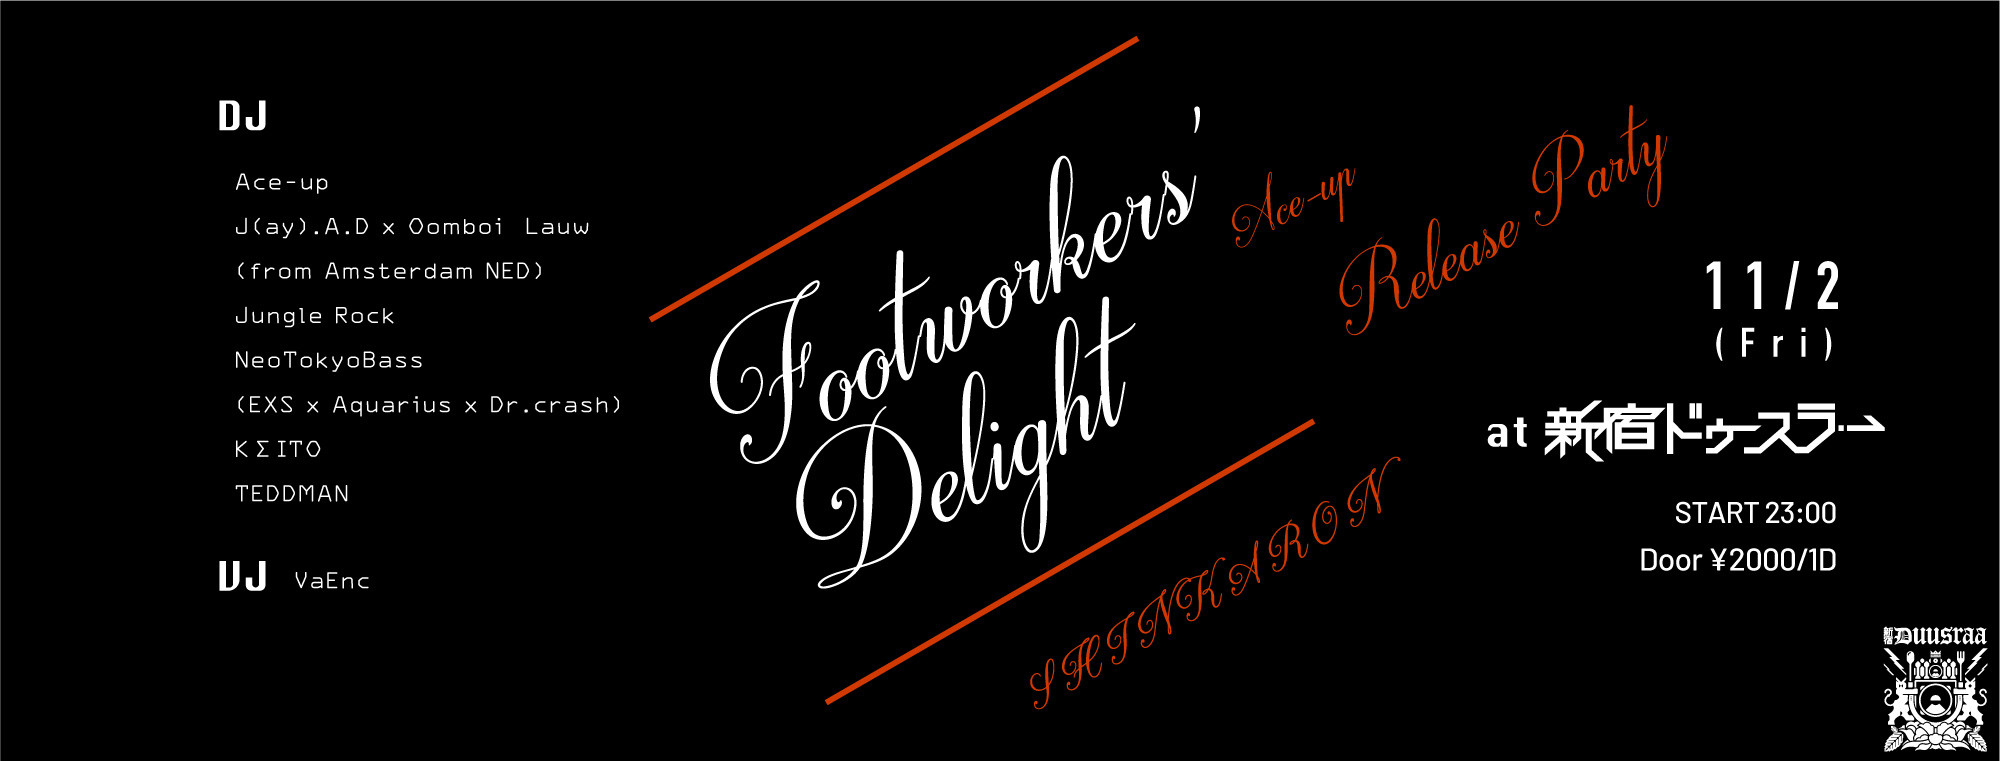 """Footworkers' Delight"" Ace-up Release Party"